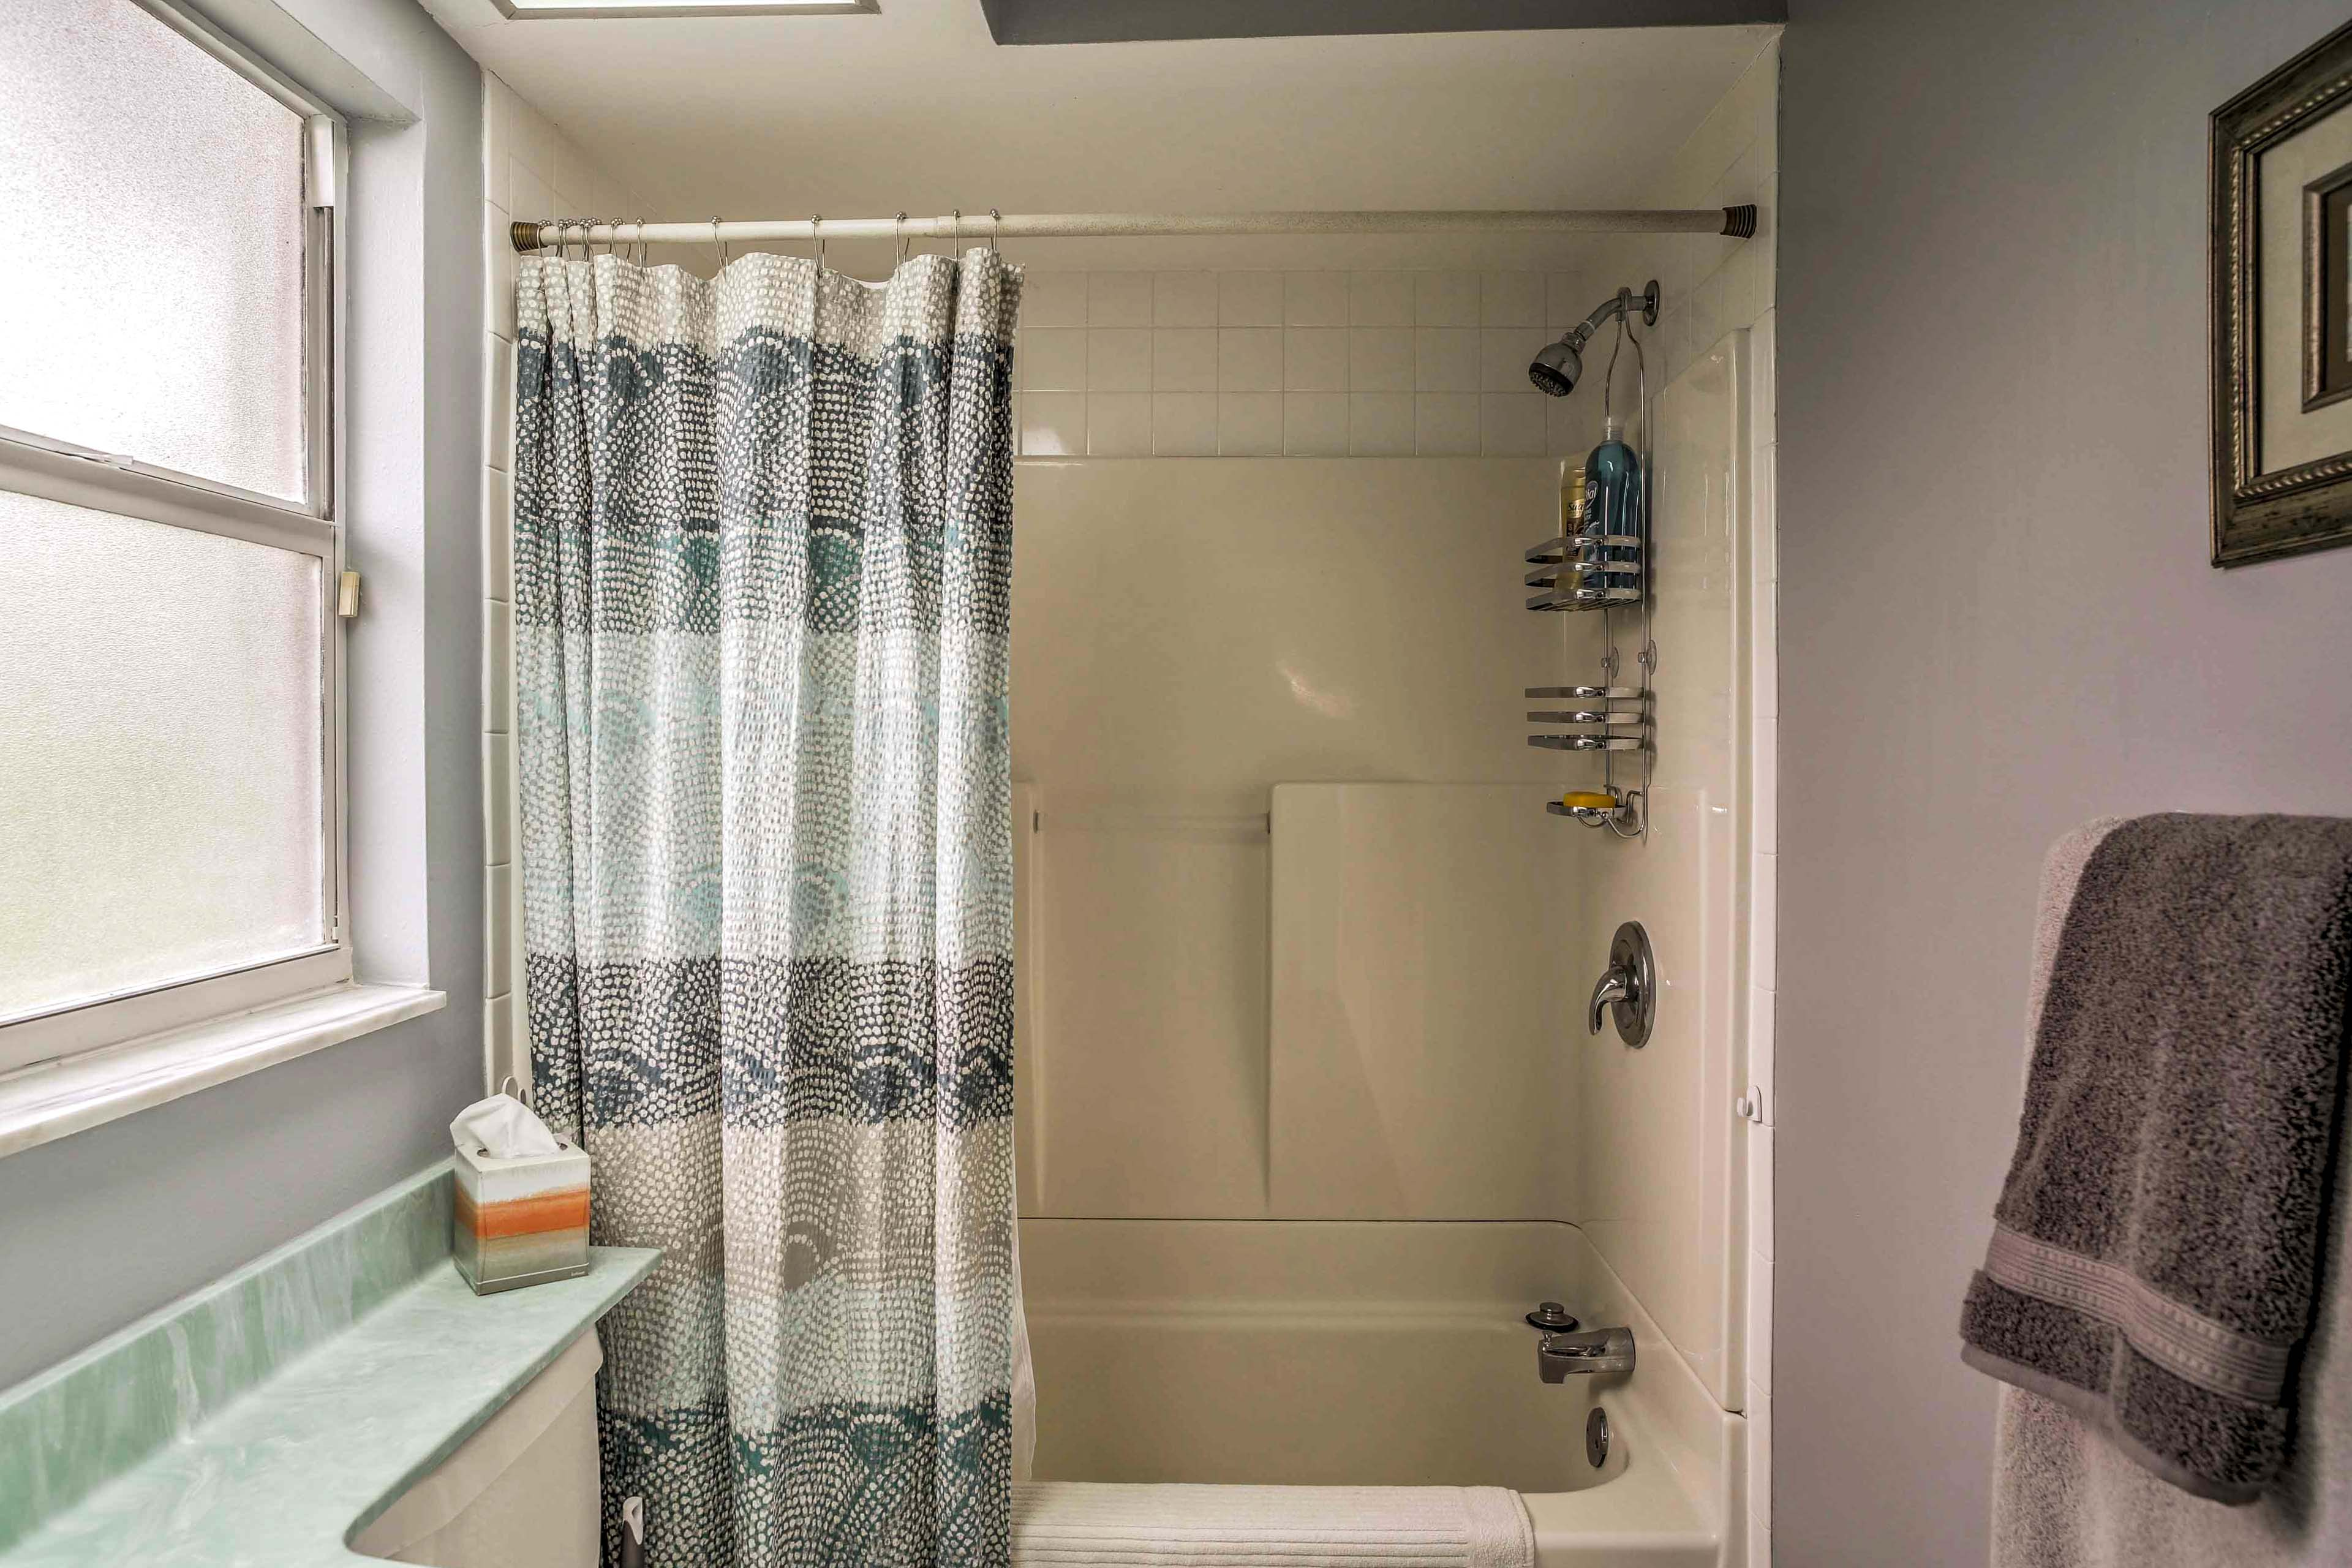 You'll find a shower/tub combo in the second bathroom.